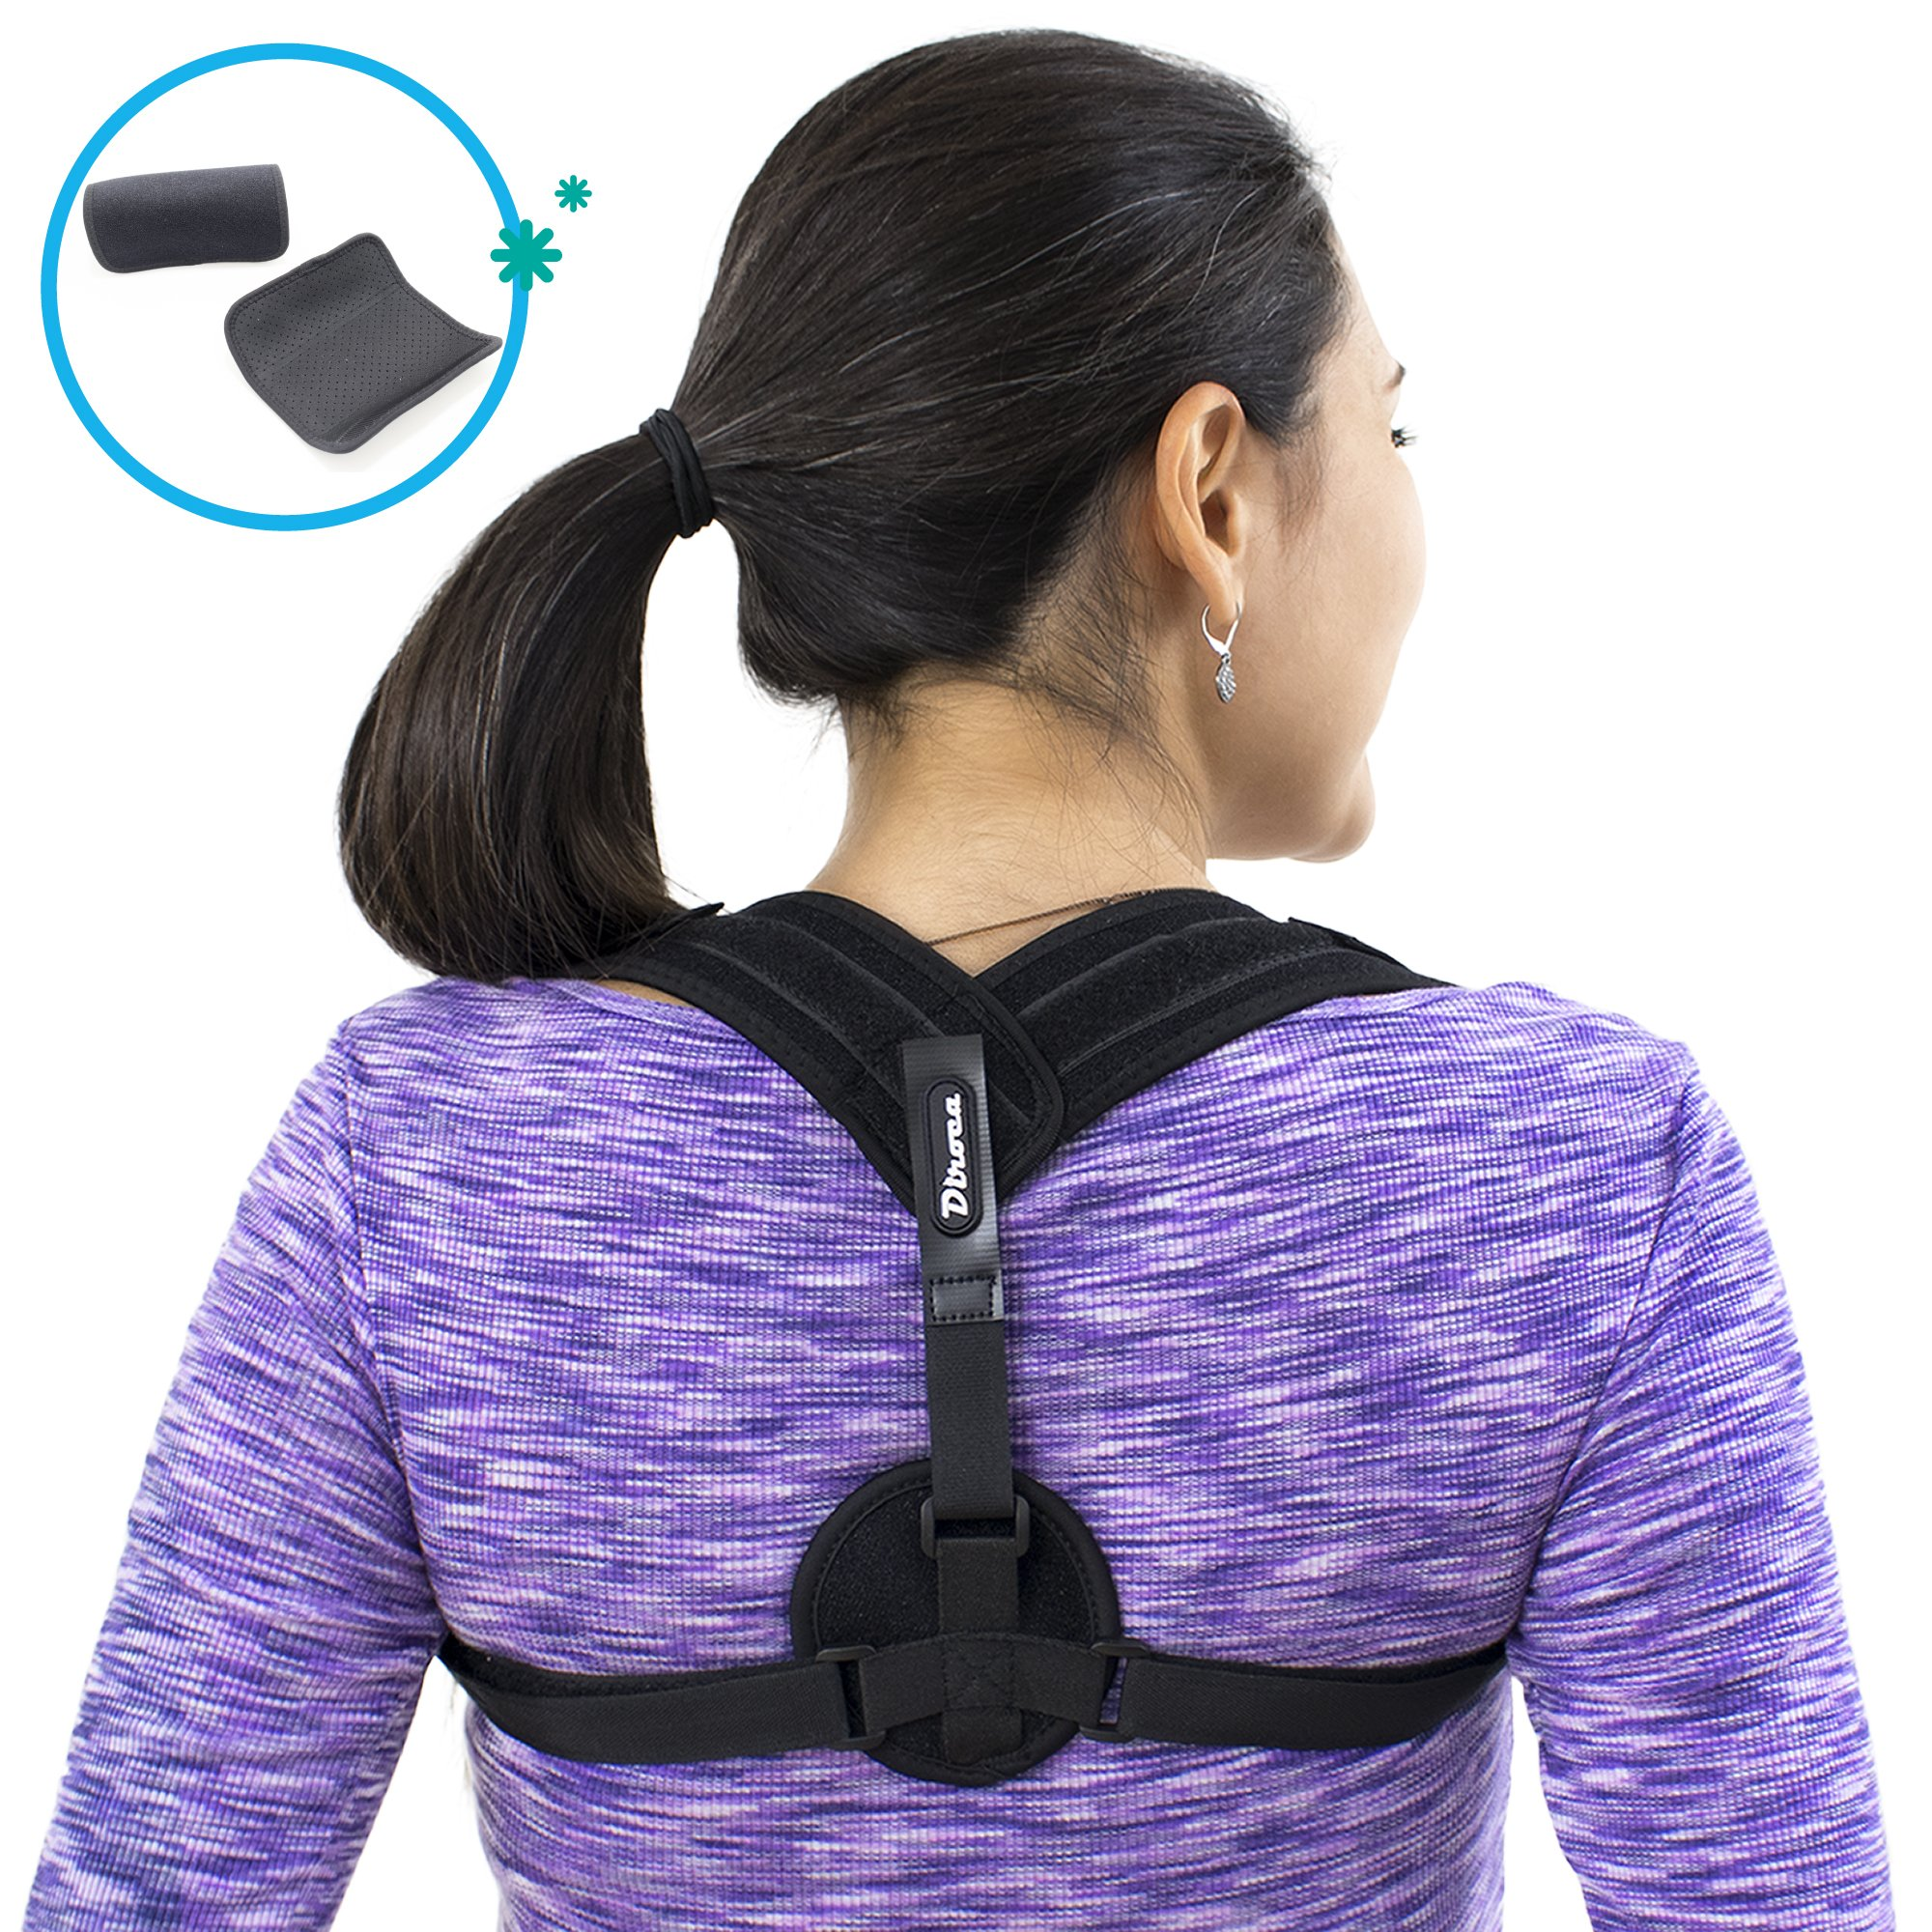 Posture Corrector   Upper Back Support & Pain Relief   Comfortable & Adjustable w/Detachable Pads   Medical Brace to Improve Bad Posture, Shoulder Alignment & Thoracic Kyphosis   Prevents Hump   for